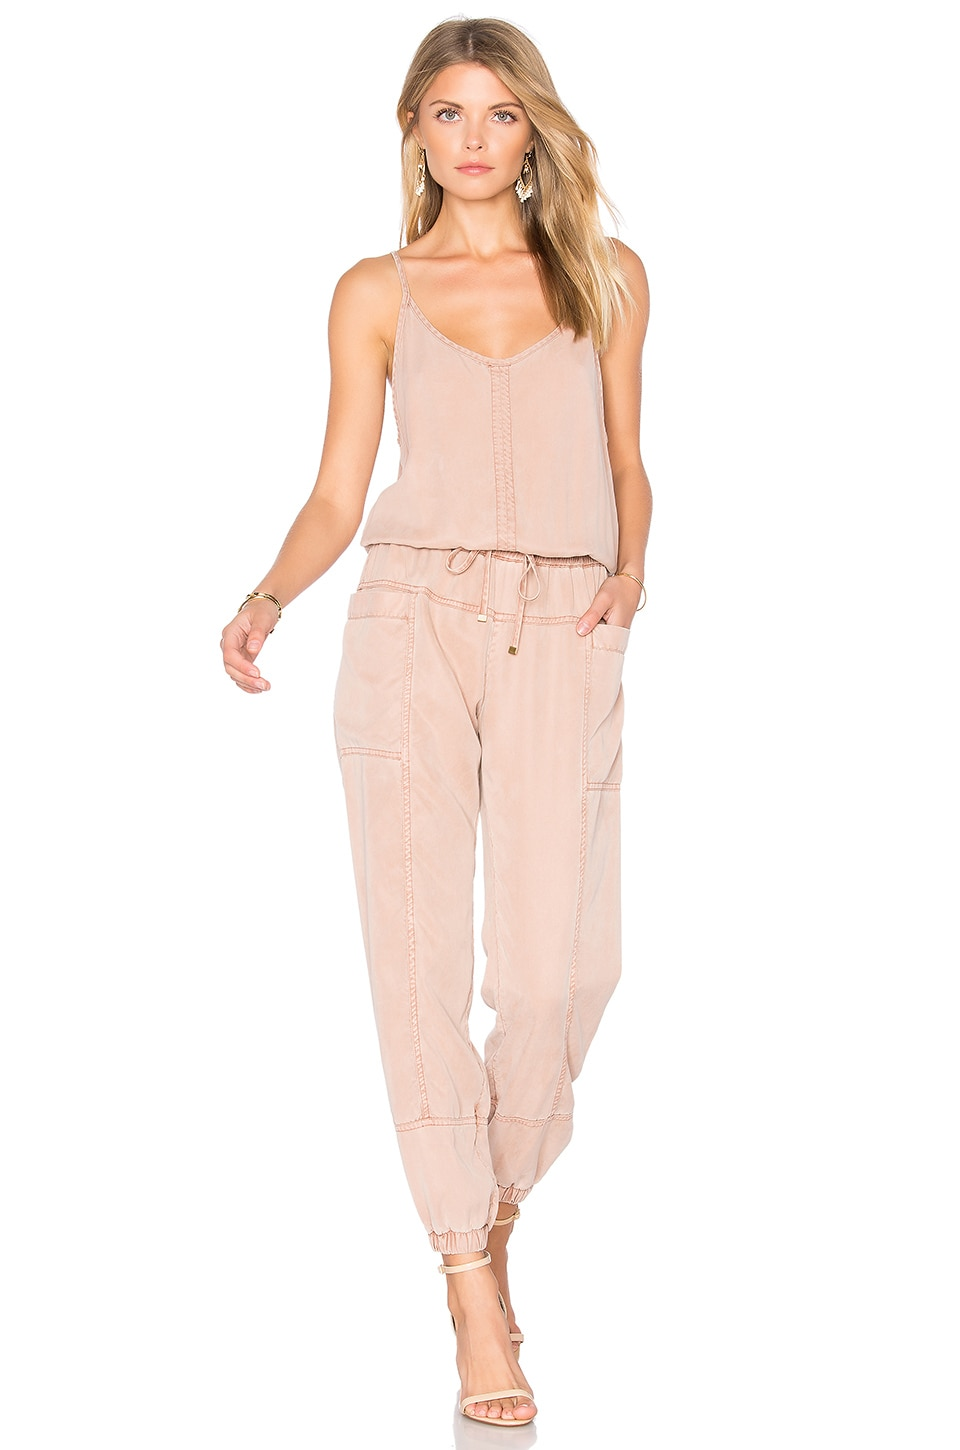 YFB CLOTHING Iver Jumpsuit in Sand Rose